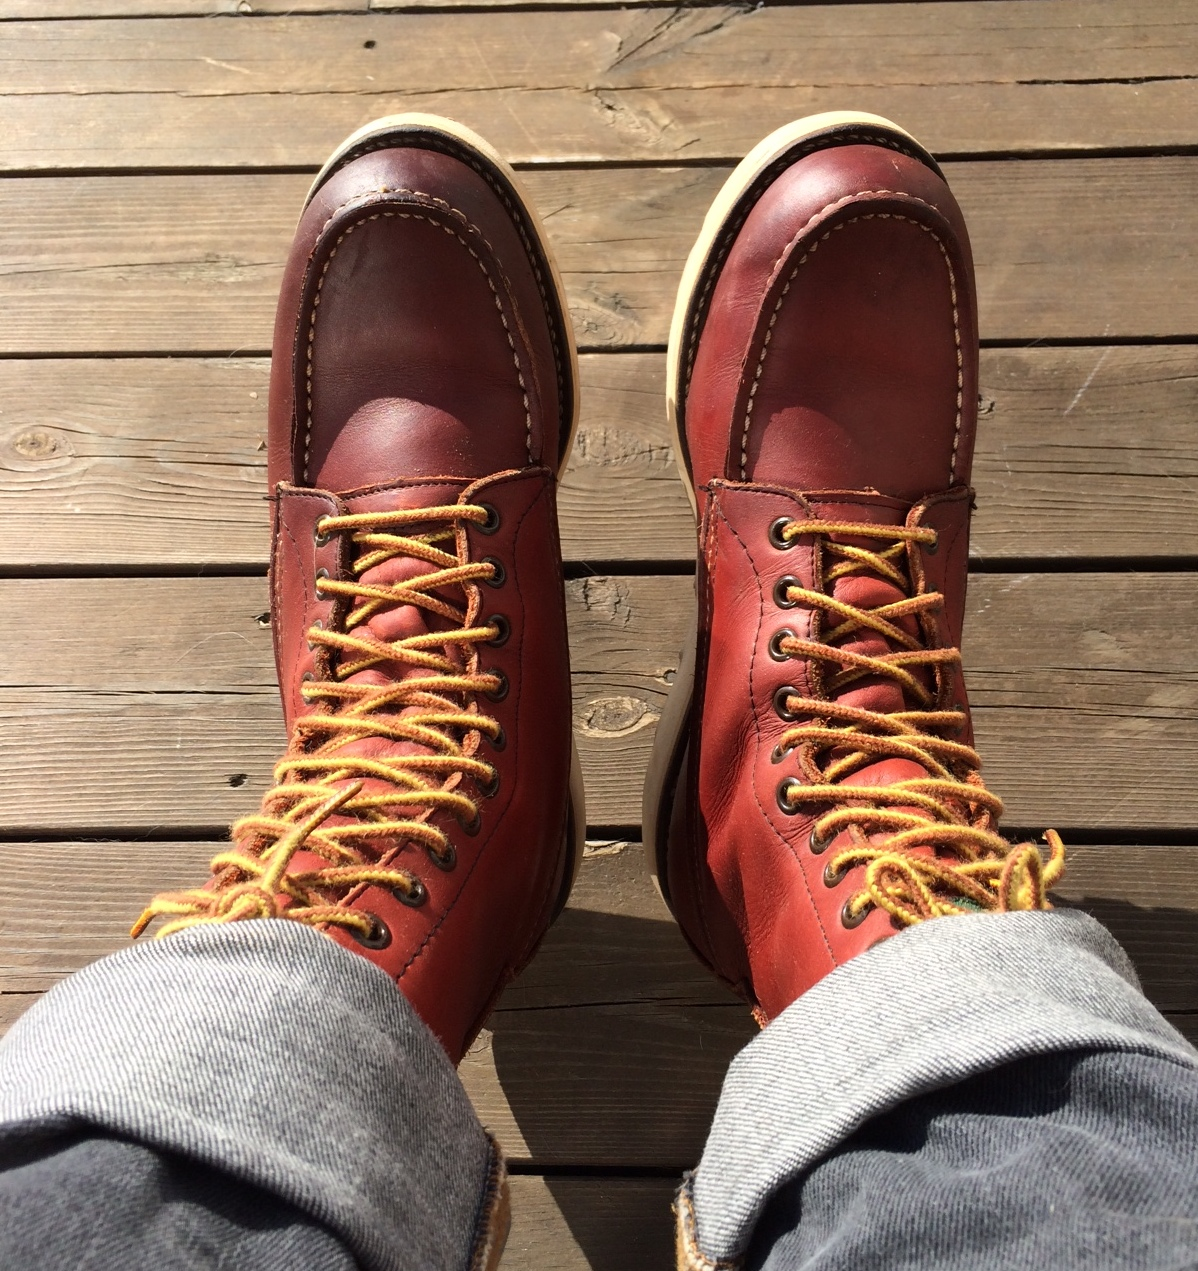 size red wings